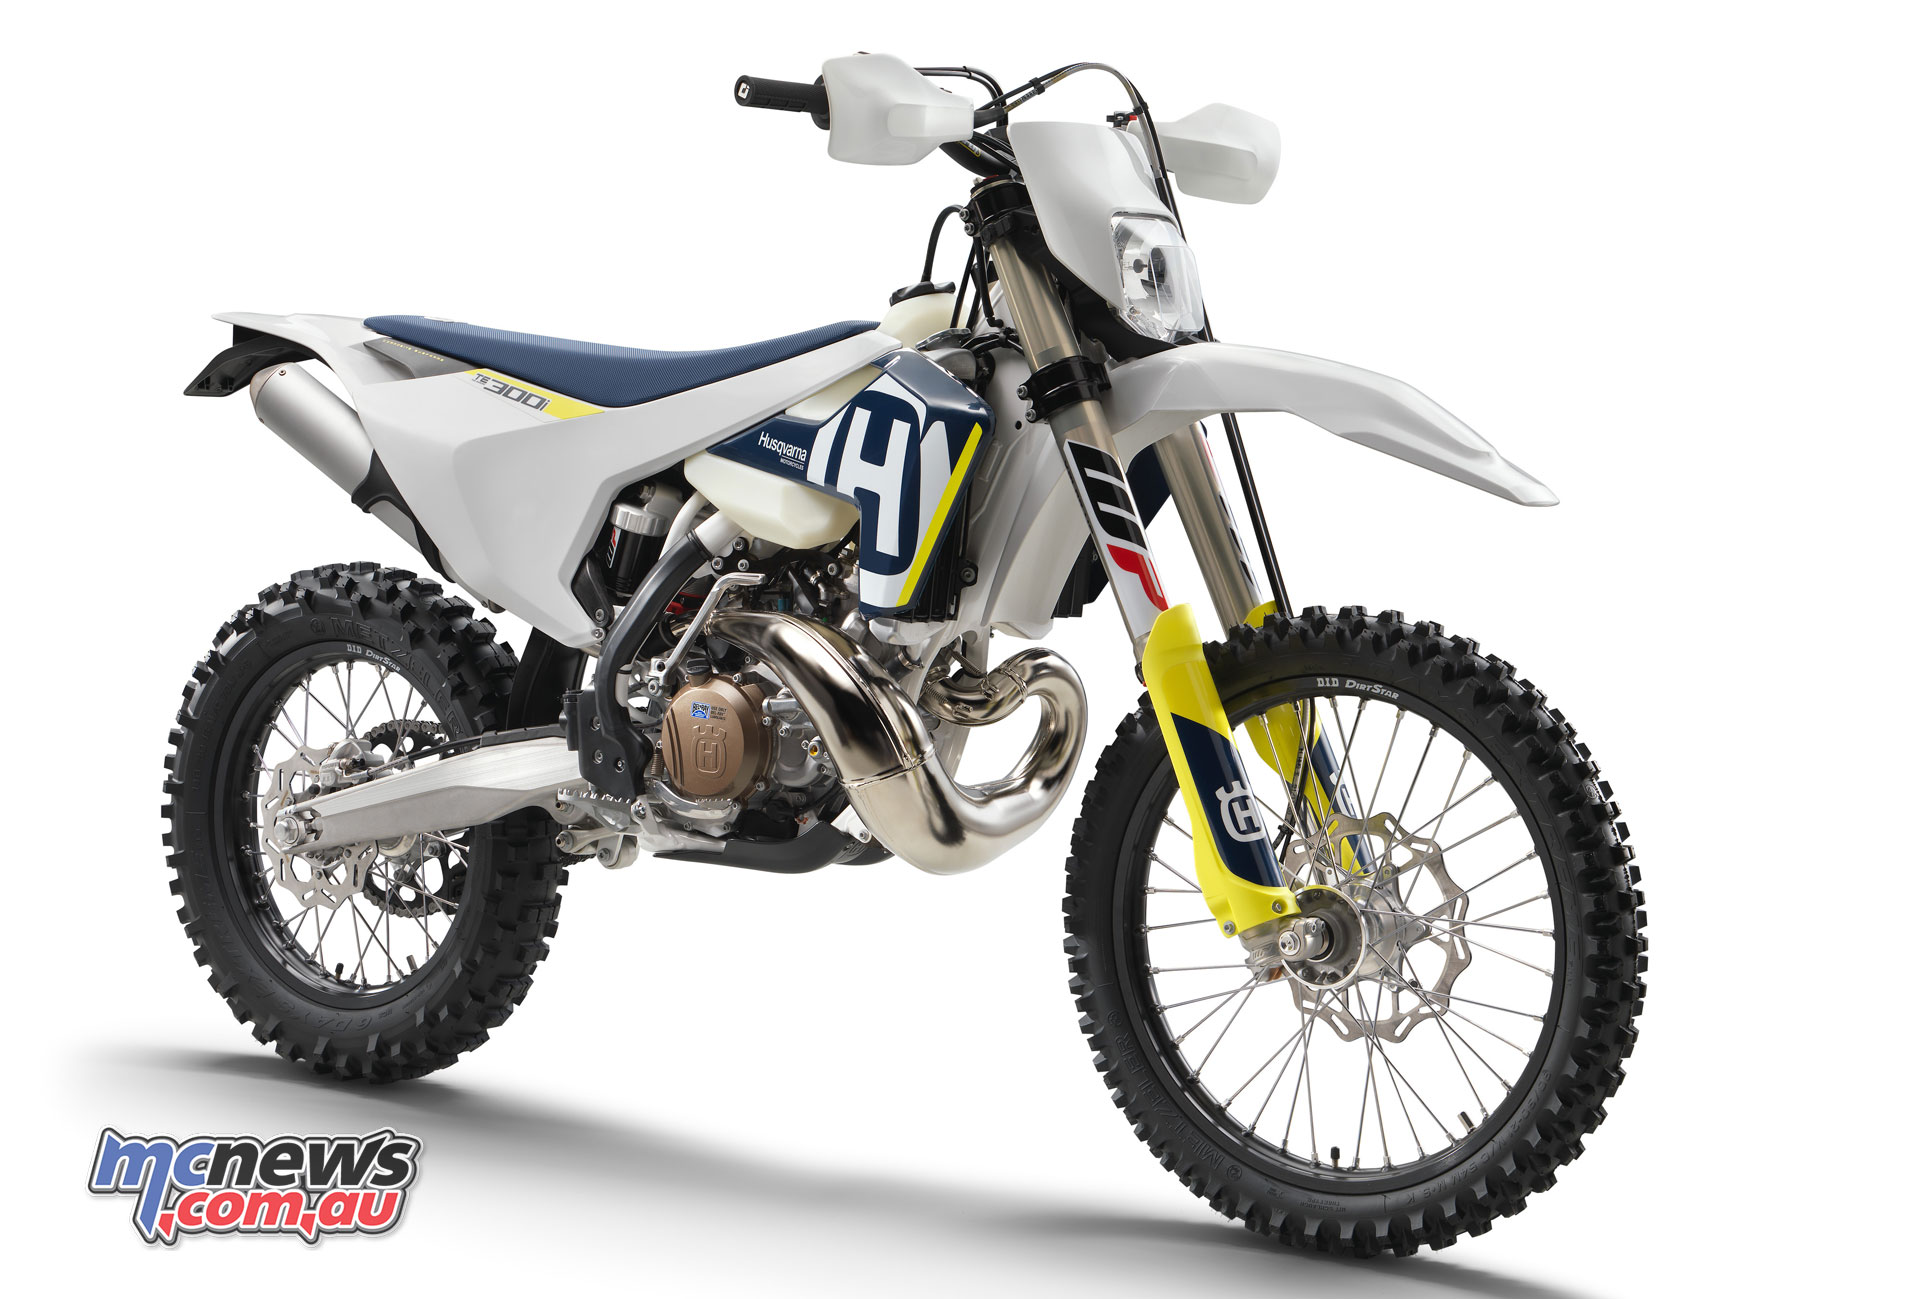 Husqvarnas 2018 Enduros Revealed Efi Te 250i 300i Mcnews Typical Water Temperature Sensor Circuit Diagram In A Motorcycle The New For Husqvarna